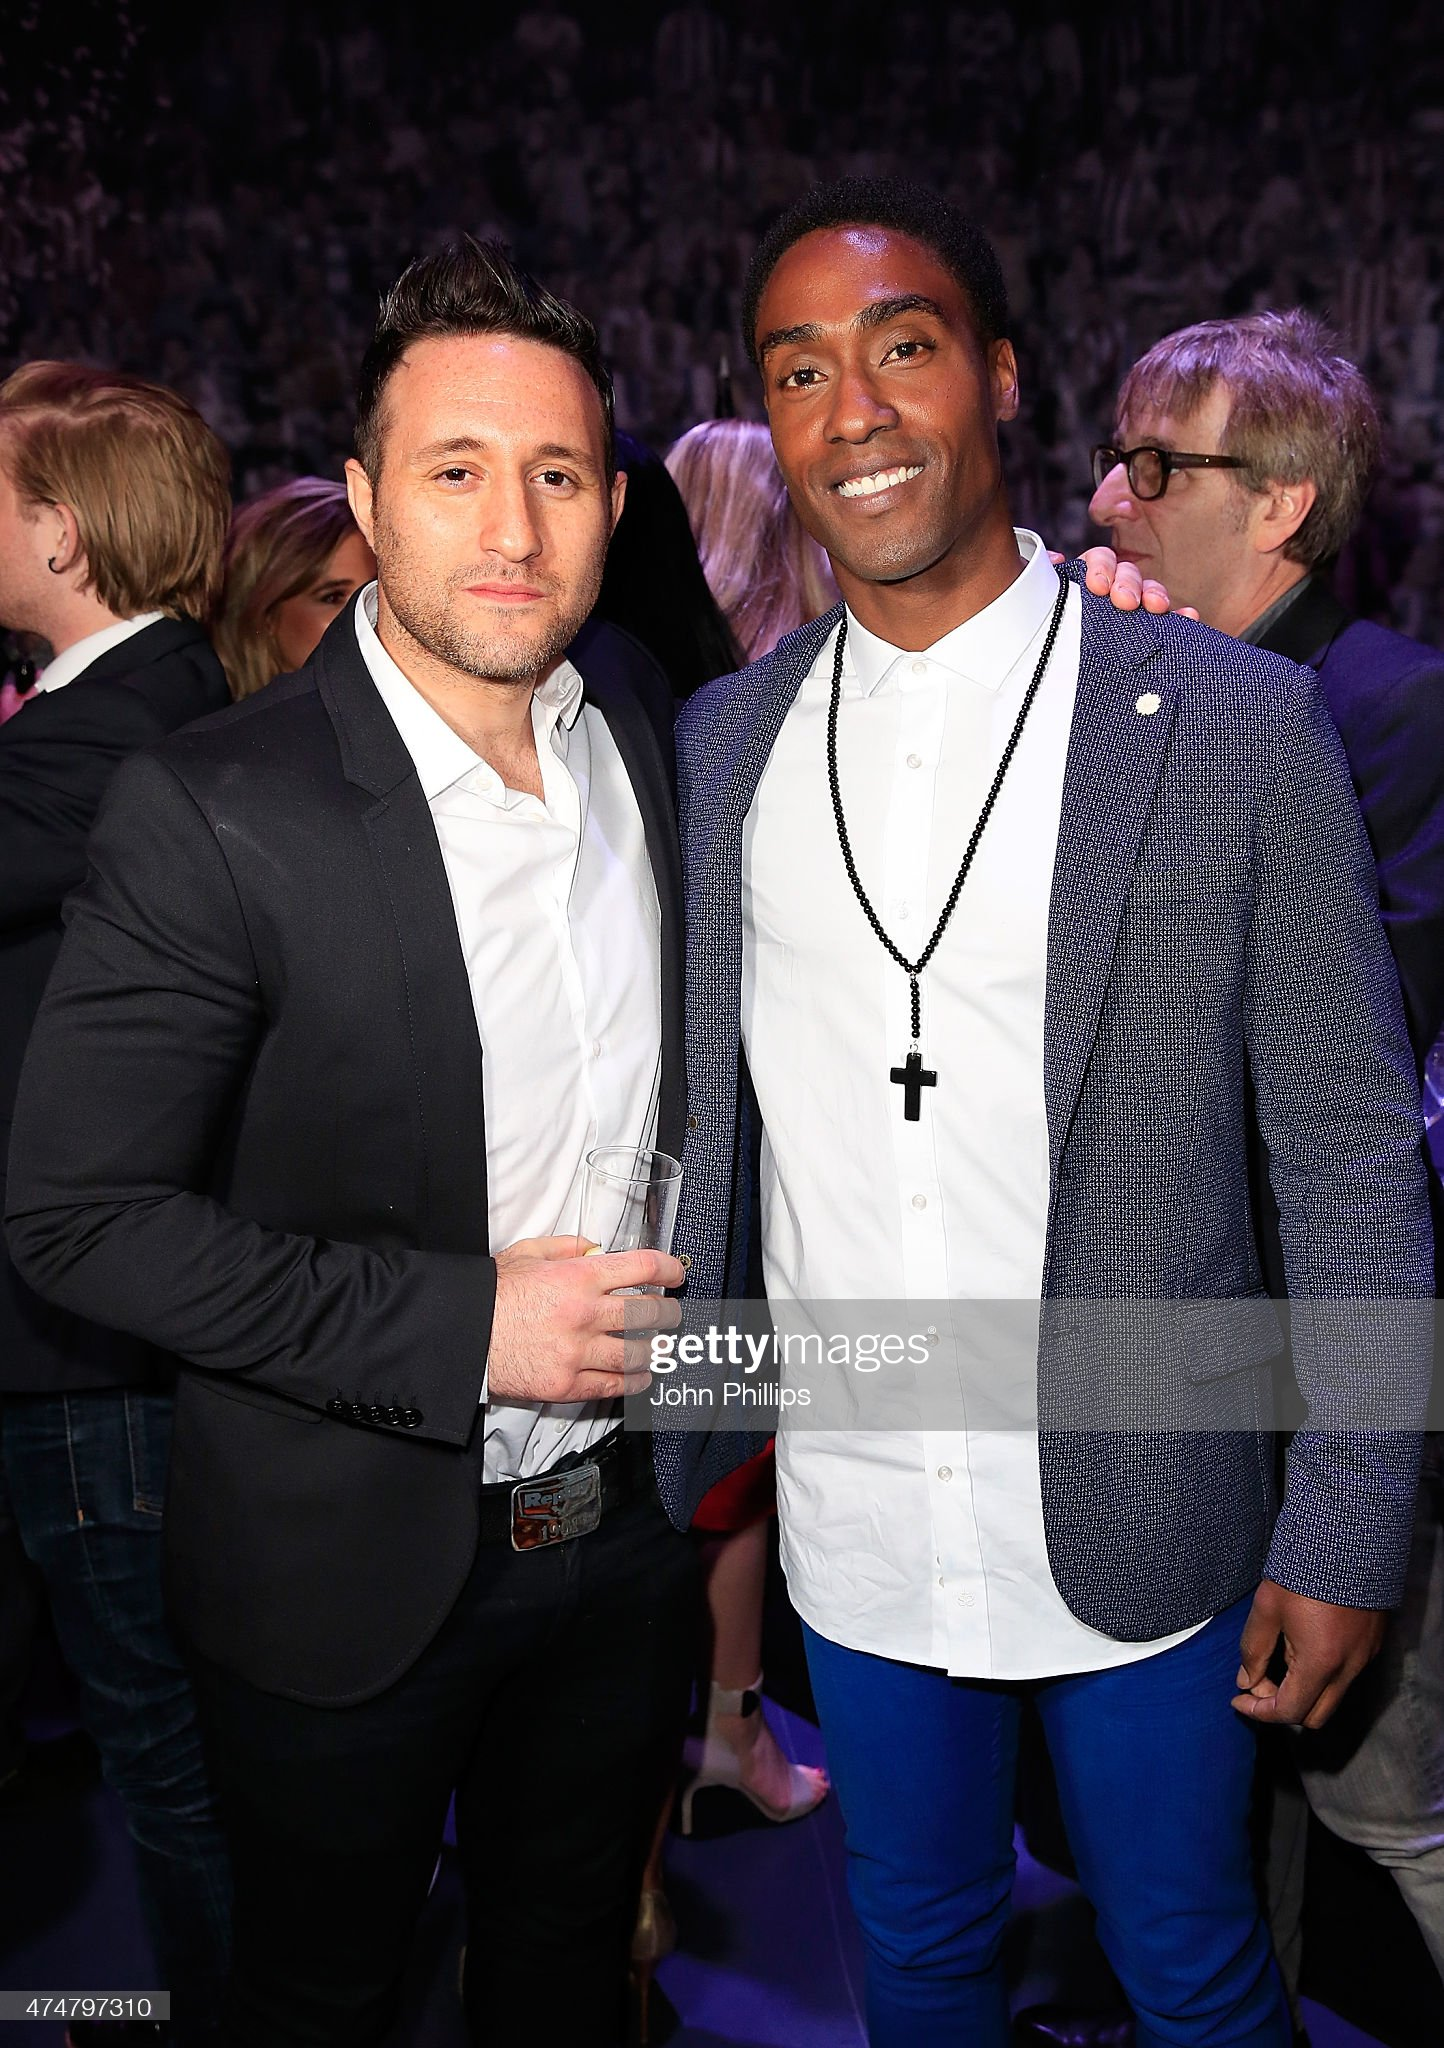 ¿Cuánto mide Antony Costa? - Real height Anthony-costa-and-simon-webbe-at-the-inaugural-facebook-football-on-picture-id474797310?s=2048x2048